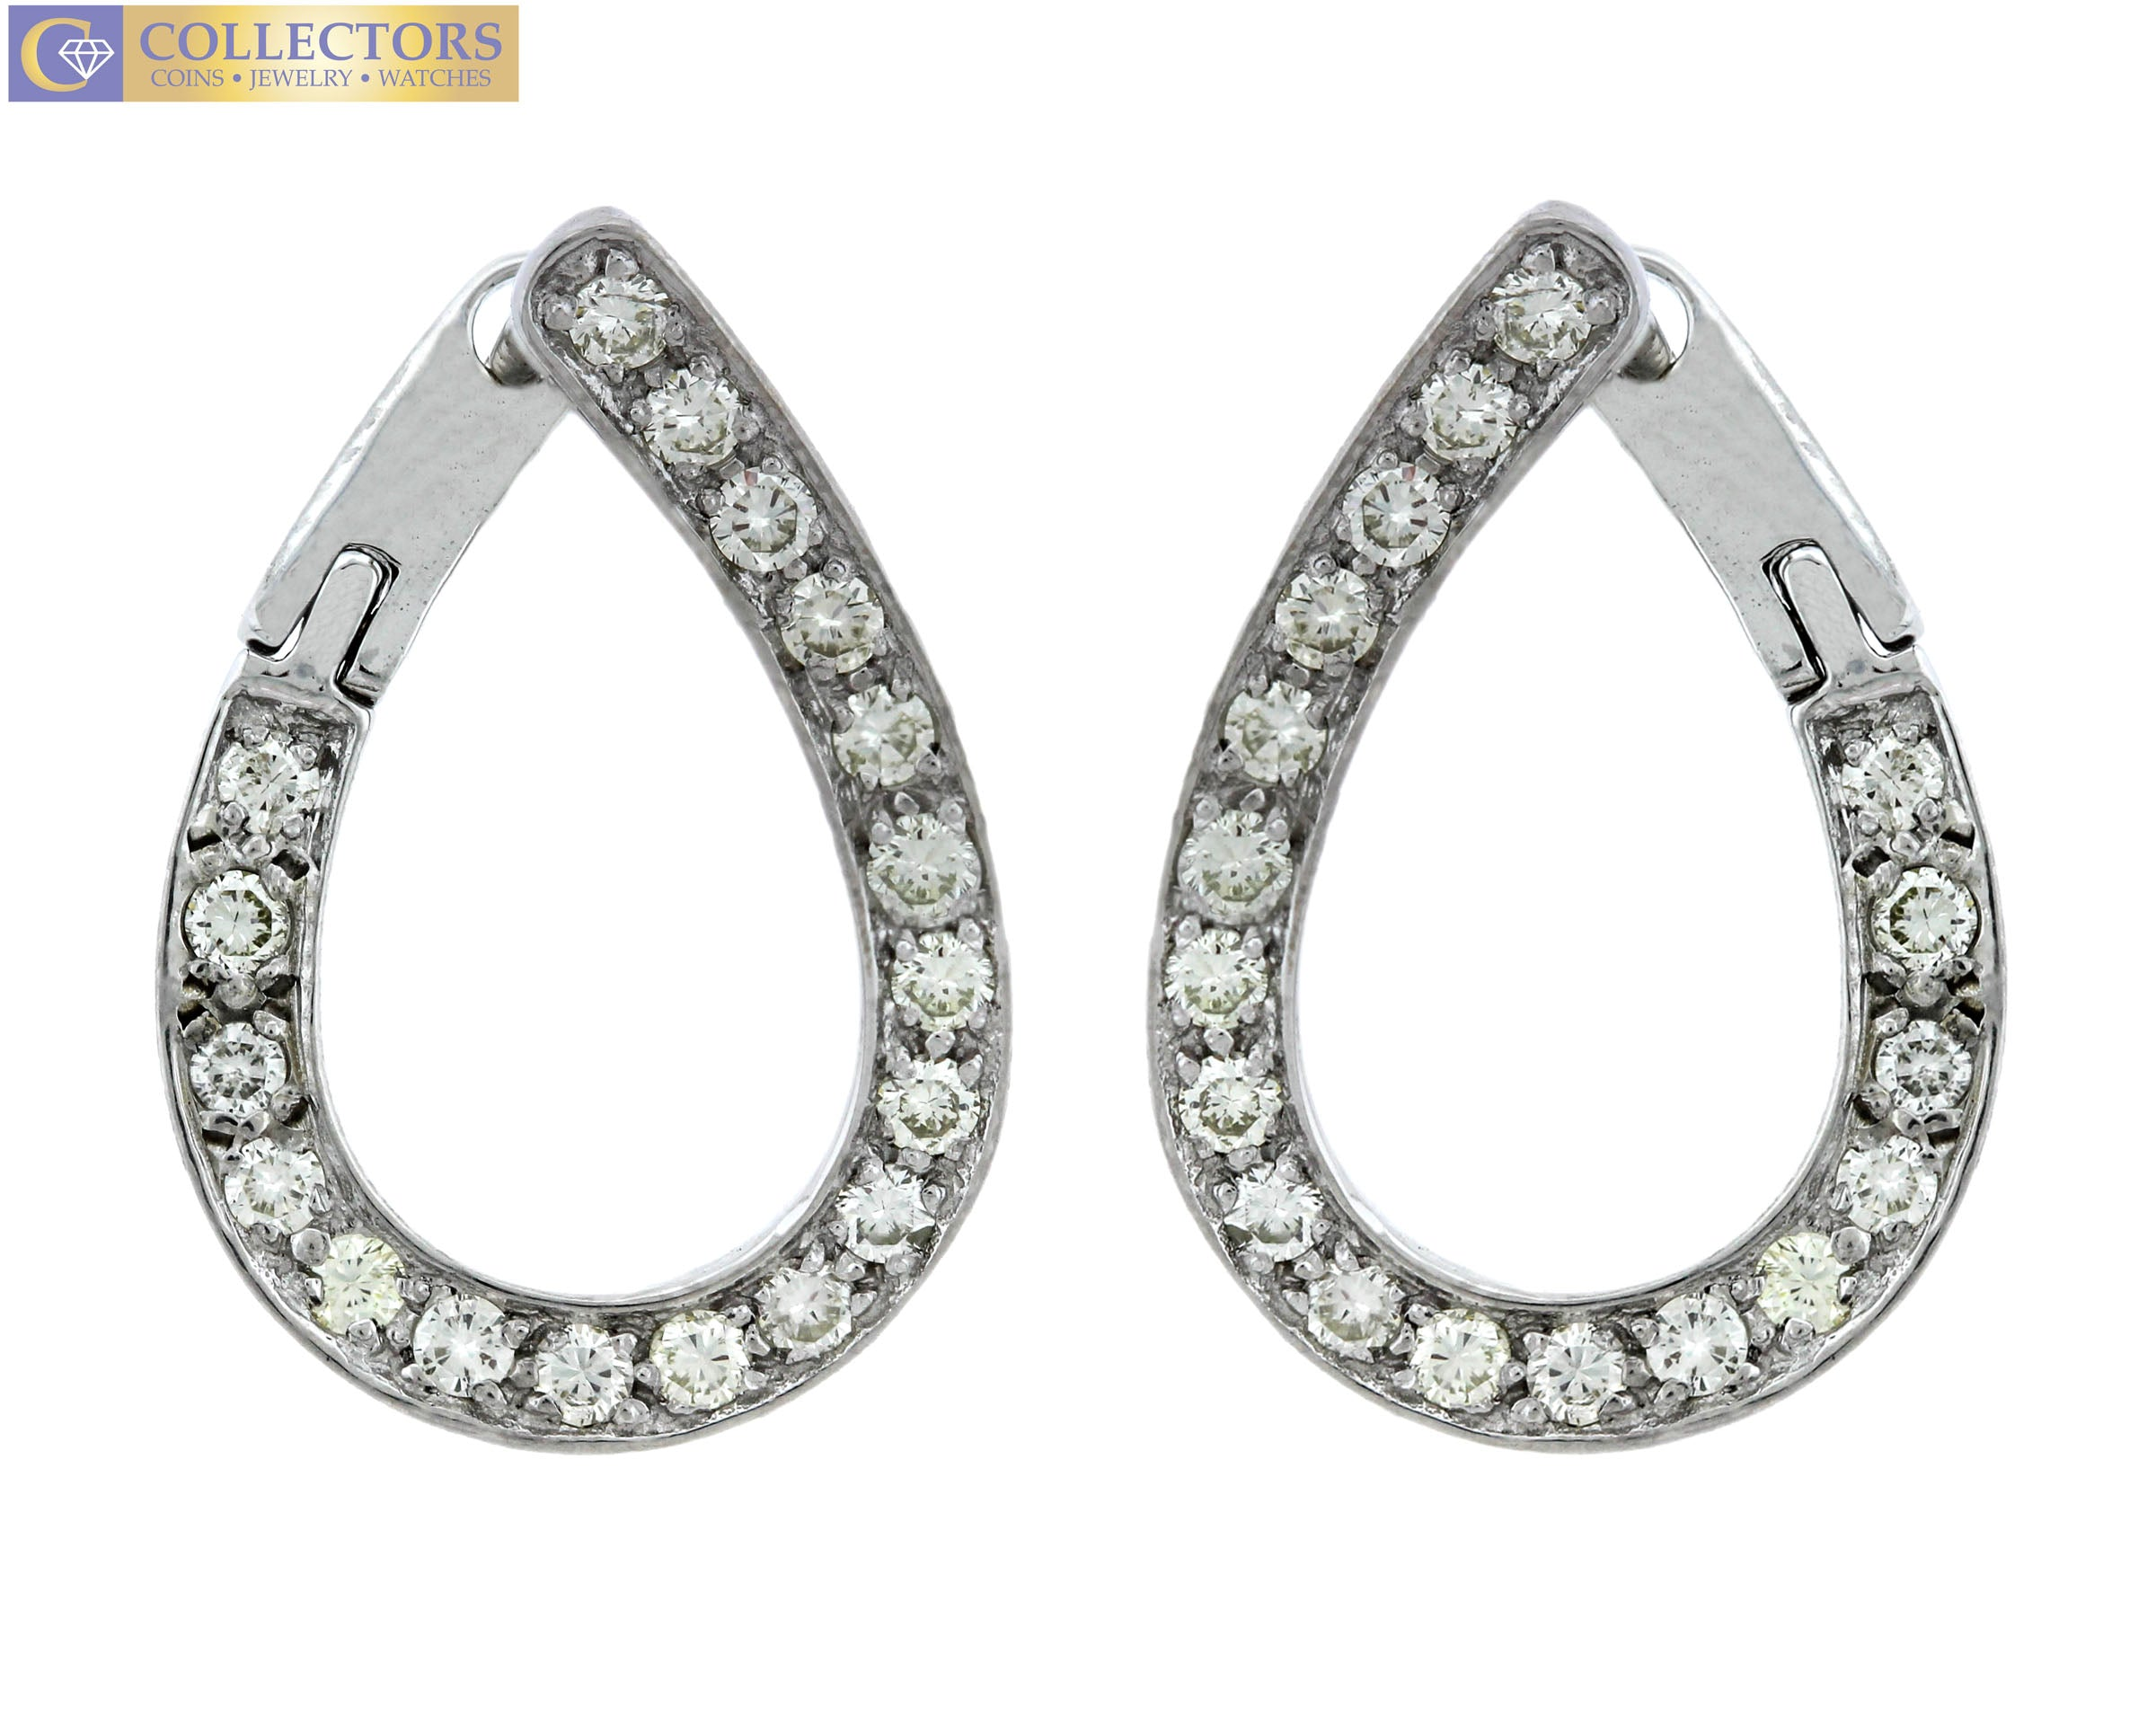 Lovely Ladies Estate 14K White Gold 1.44ctw Diamond Pear Shape Drop Earrings